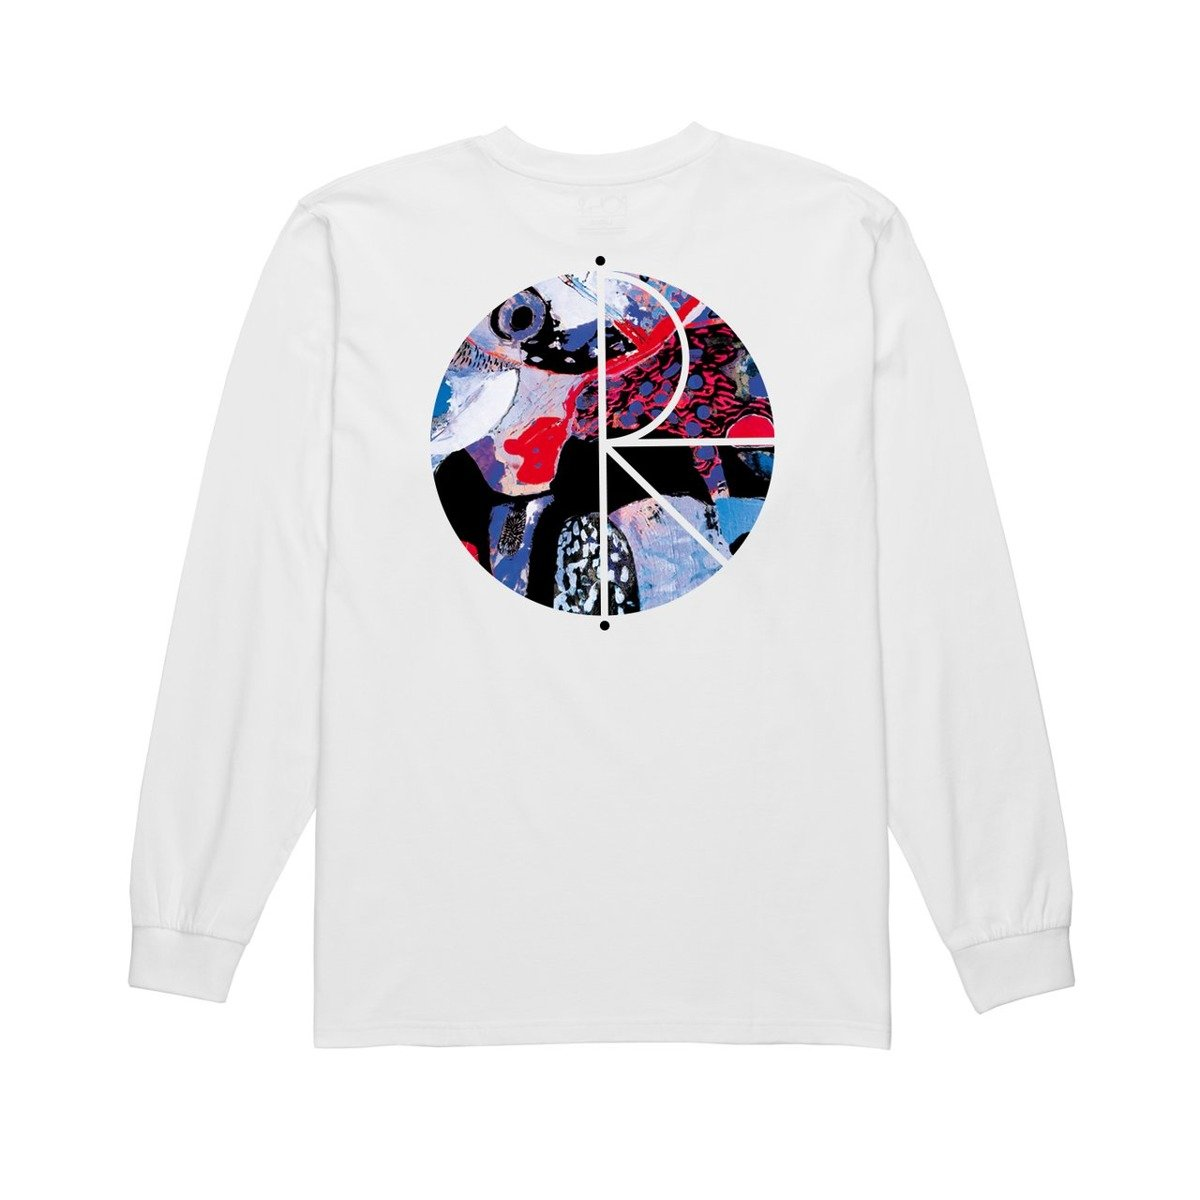 Image result for POLAR SKELETON FILL LOGO LONG SLEEVE